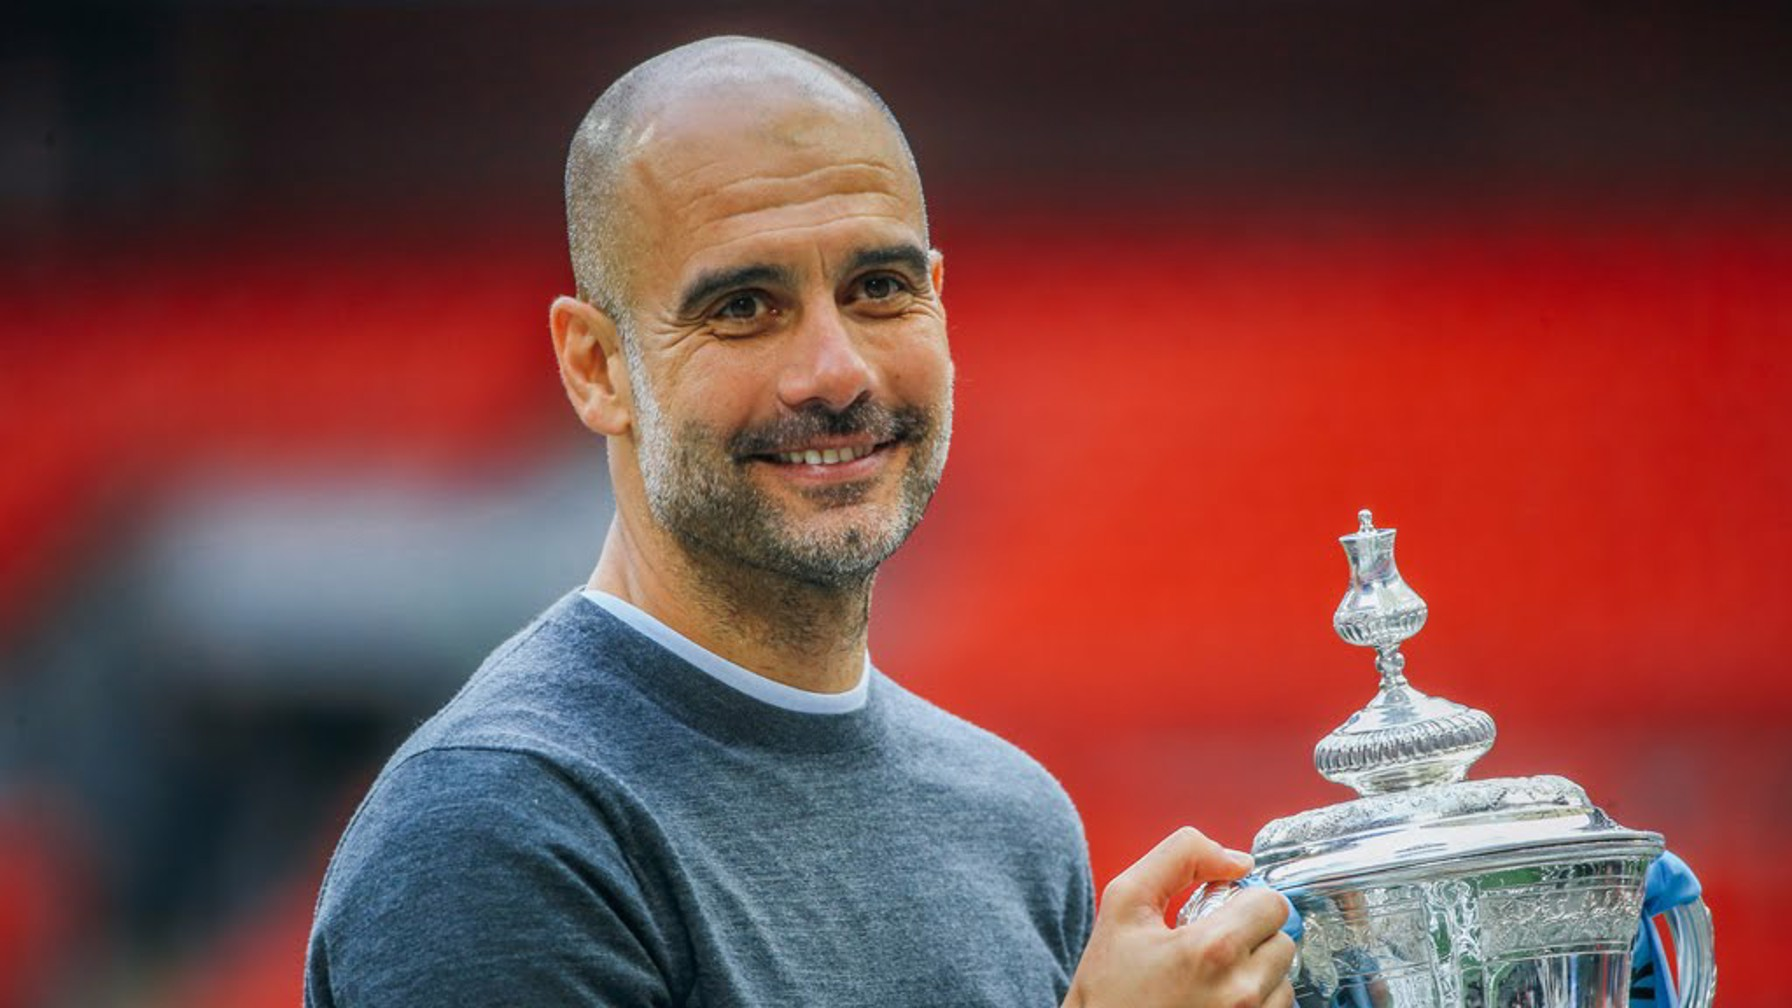 GUARDIOLA GRIN: Pep gets his hands on the cup